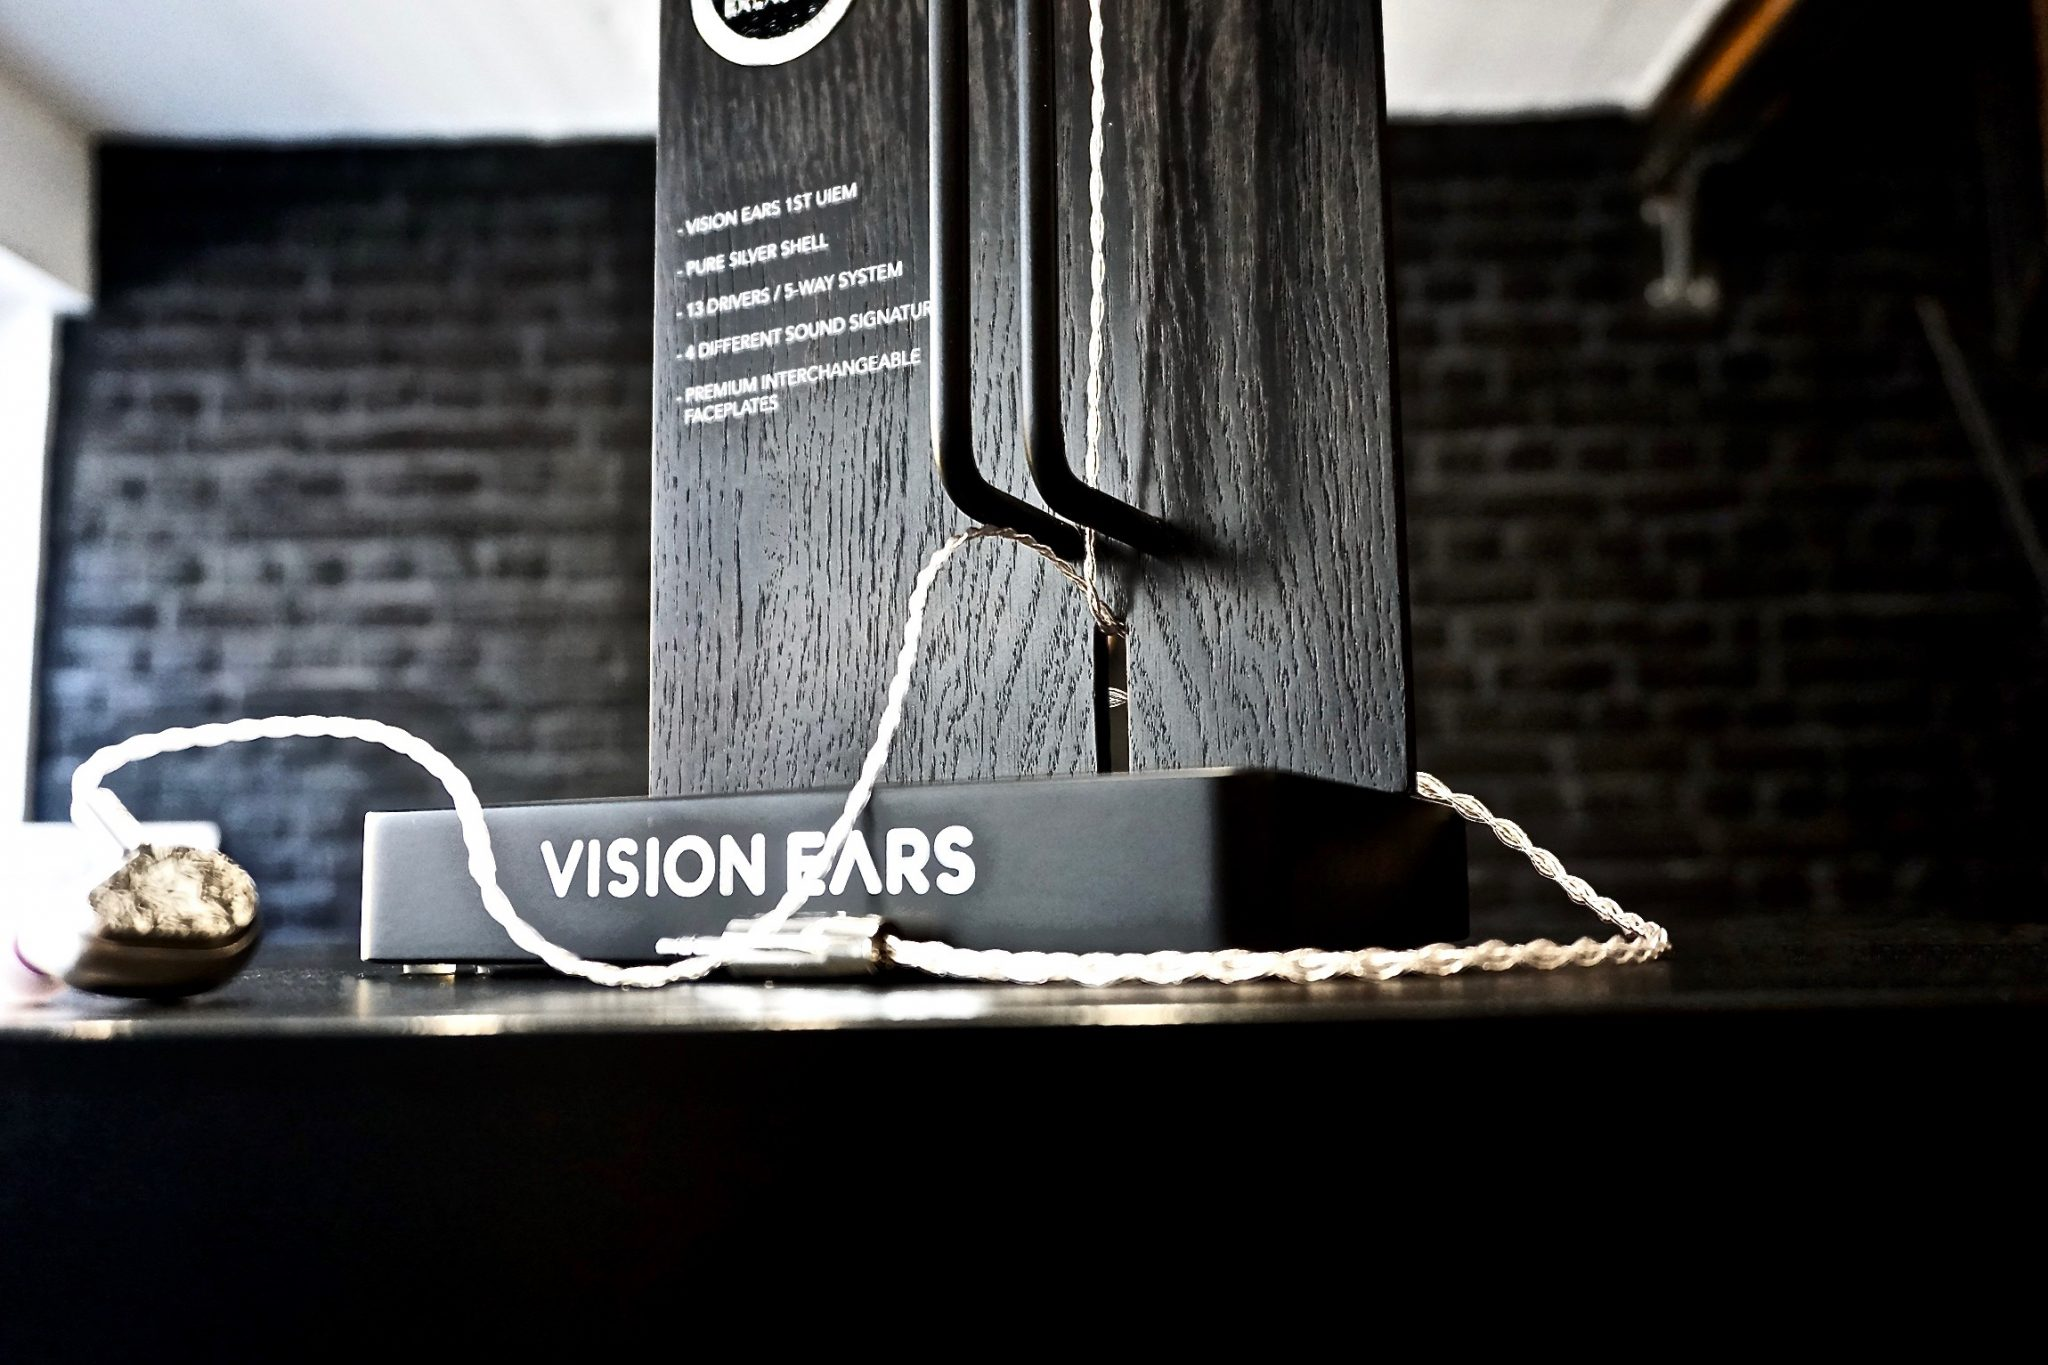 Vision Ears, Erlkönig, Product Display Design, Stil Manipulation 2018